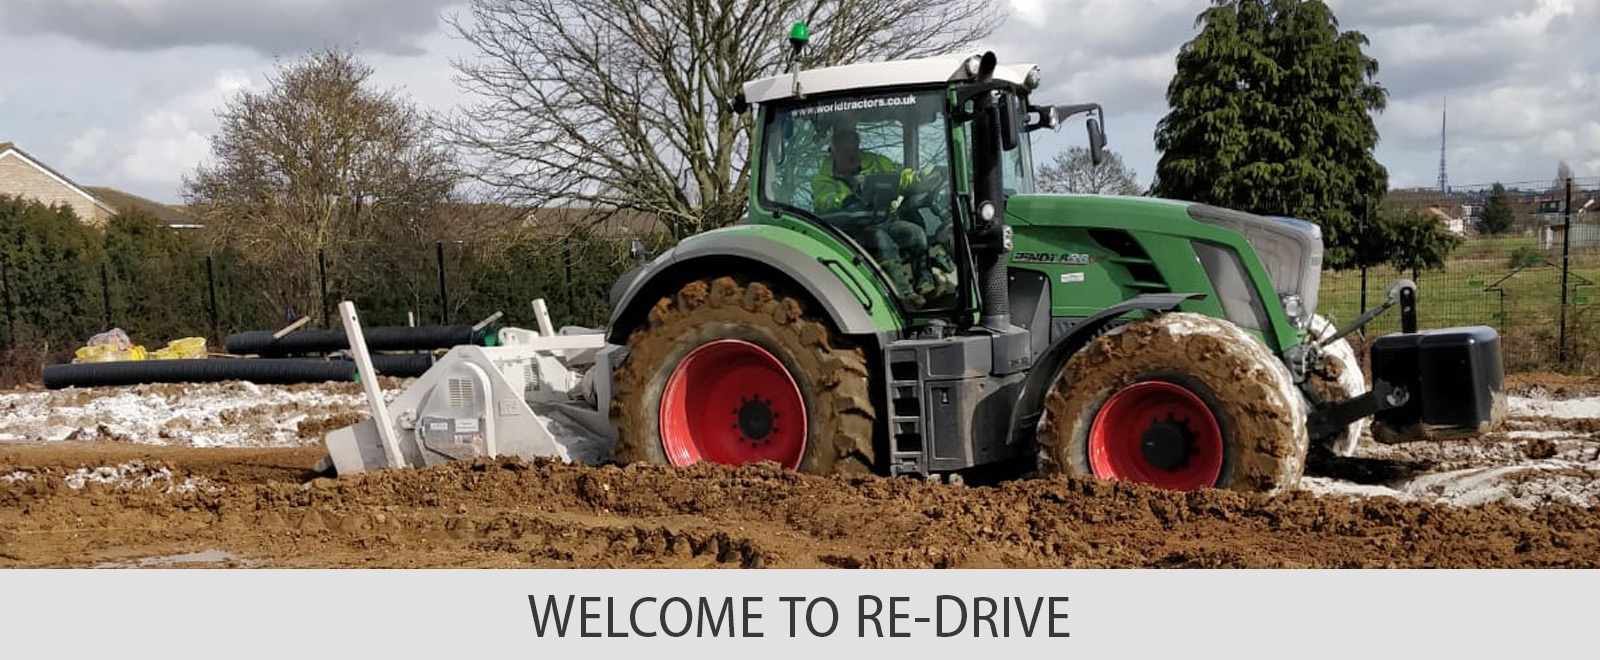 WELCOME TO RE-DRIVE